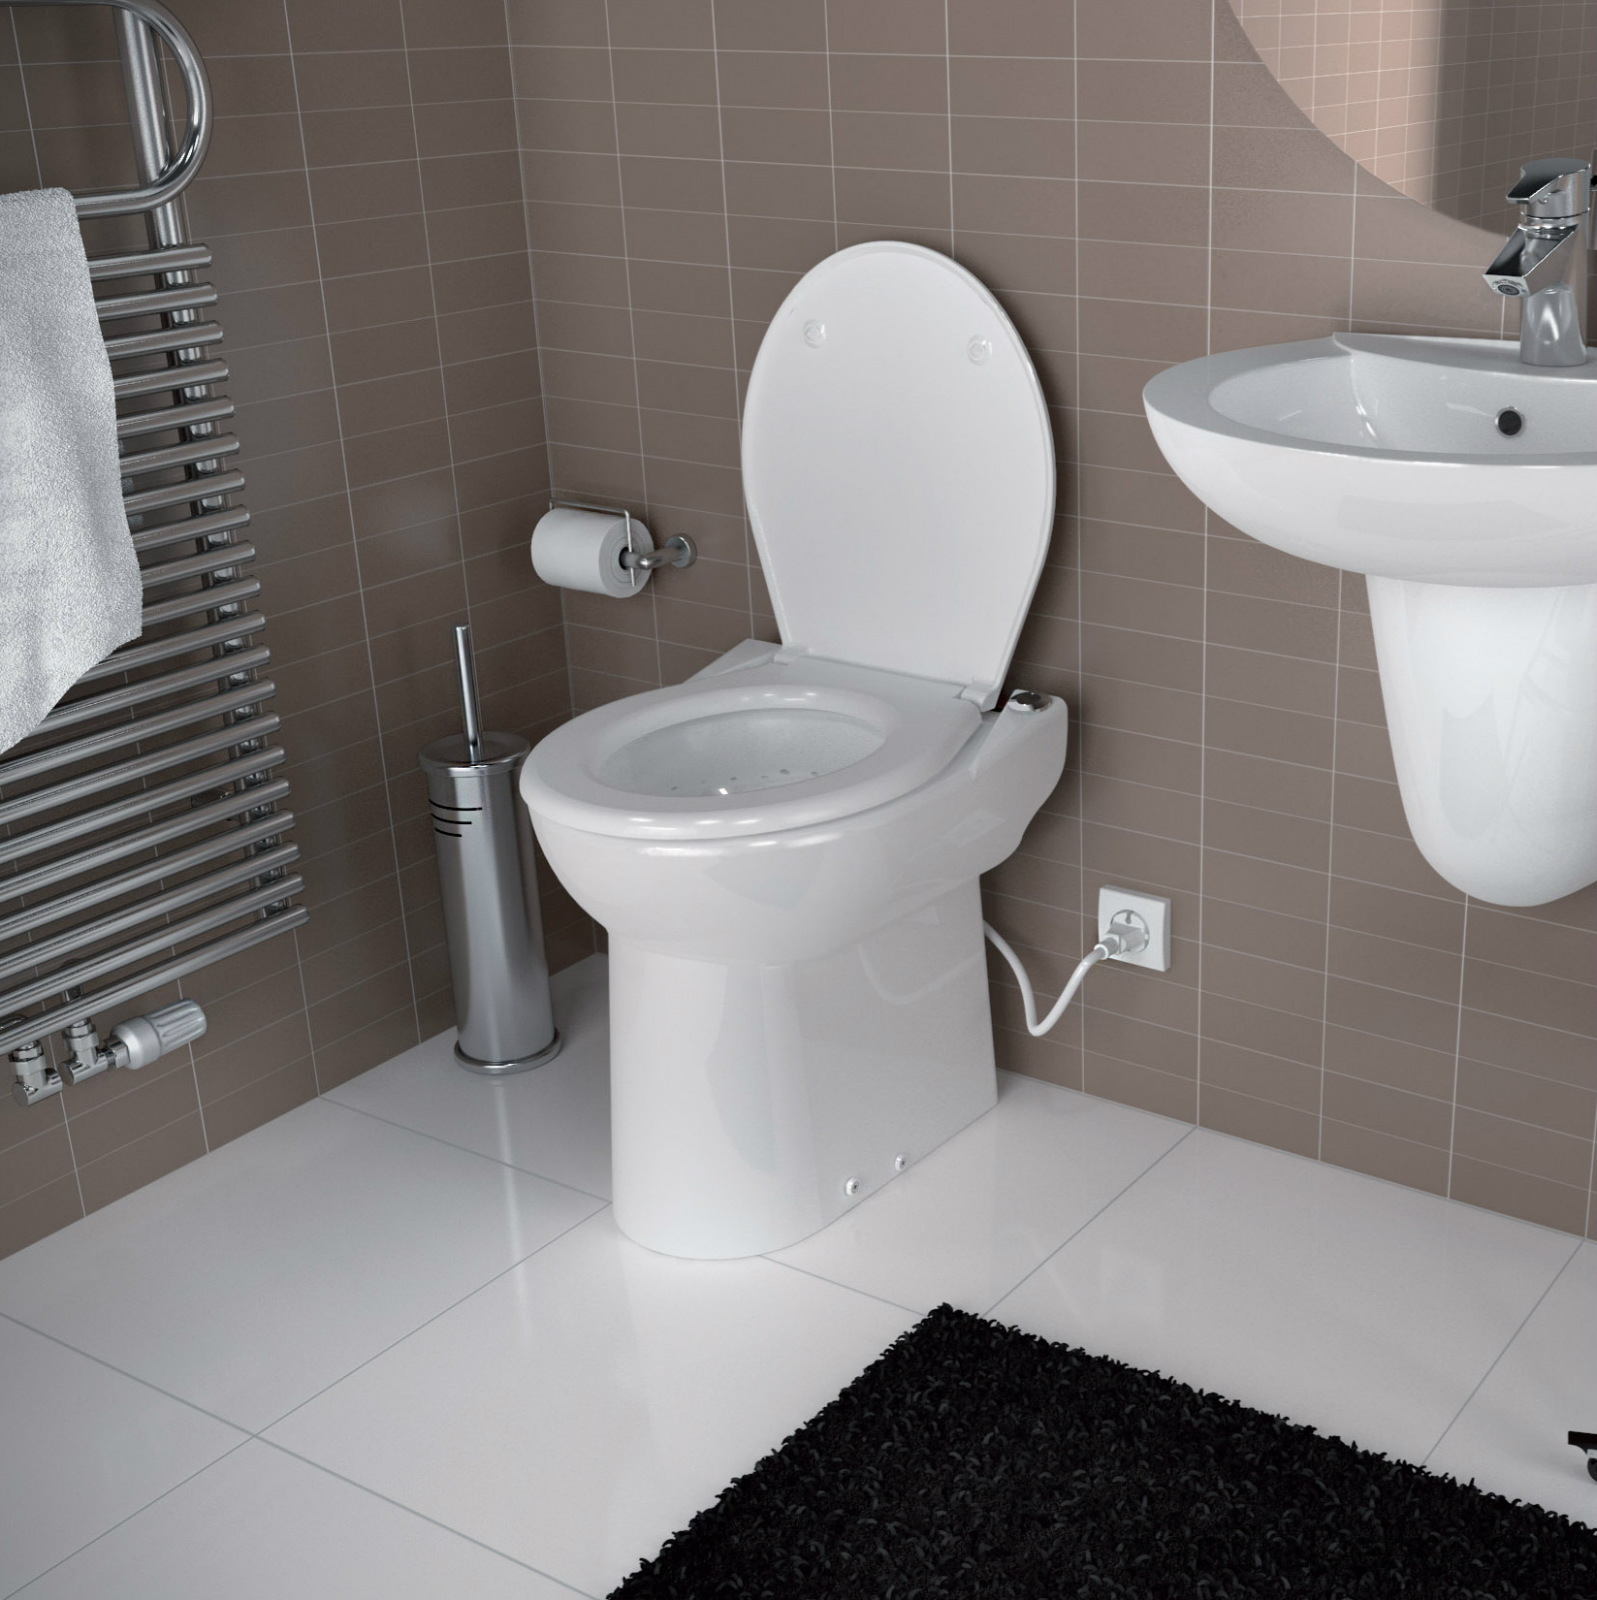 Macerator Toilet Wikipedia | Saniflo | Upflush Toilet